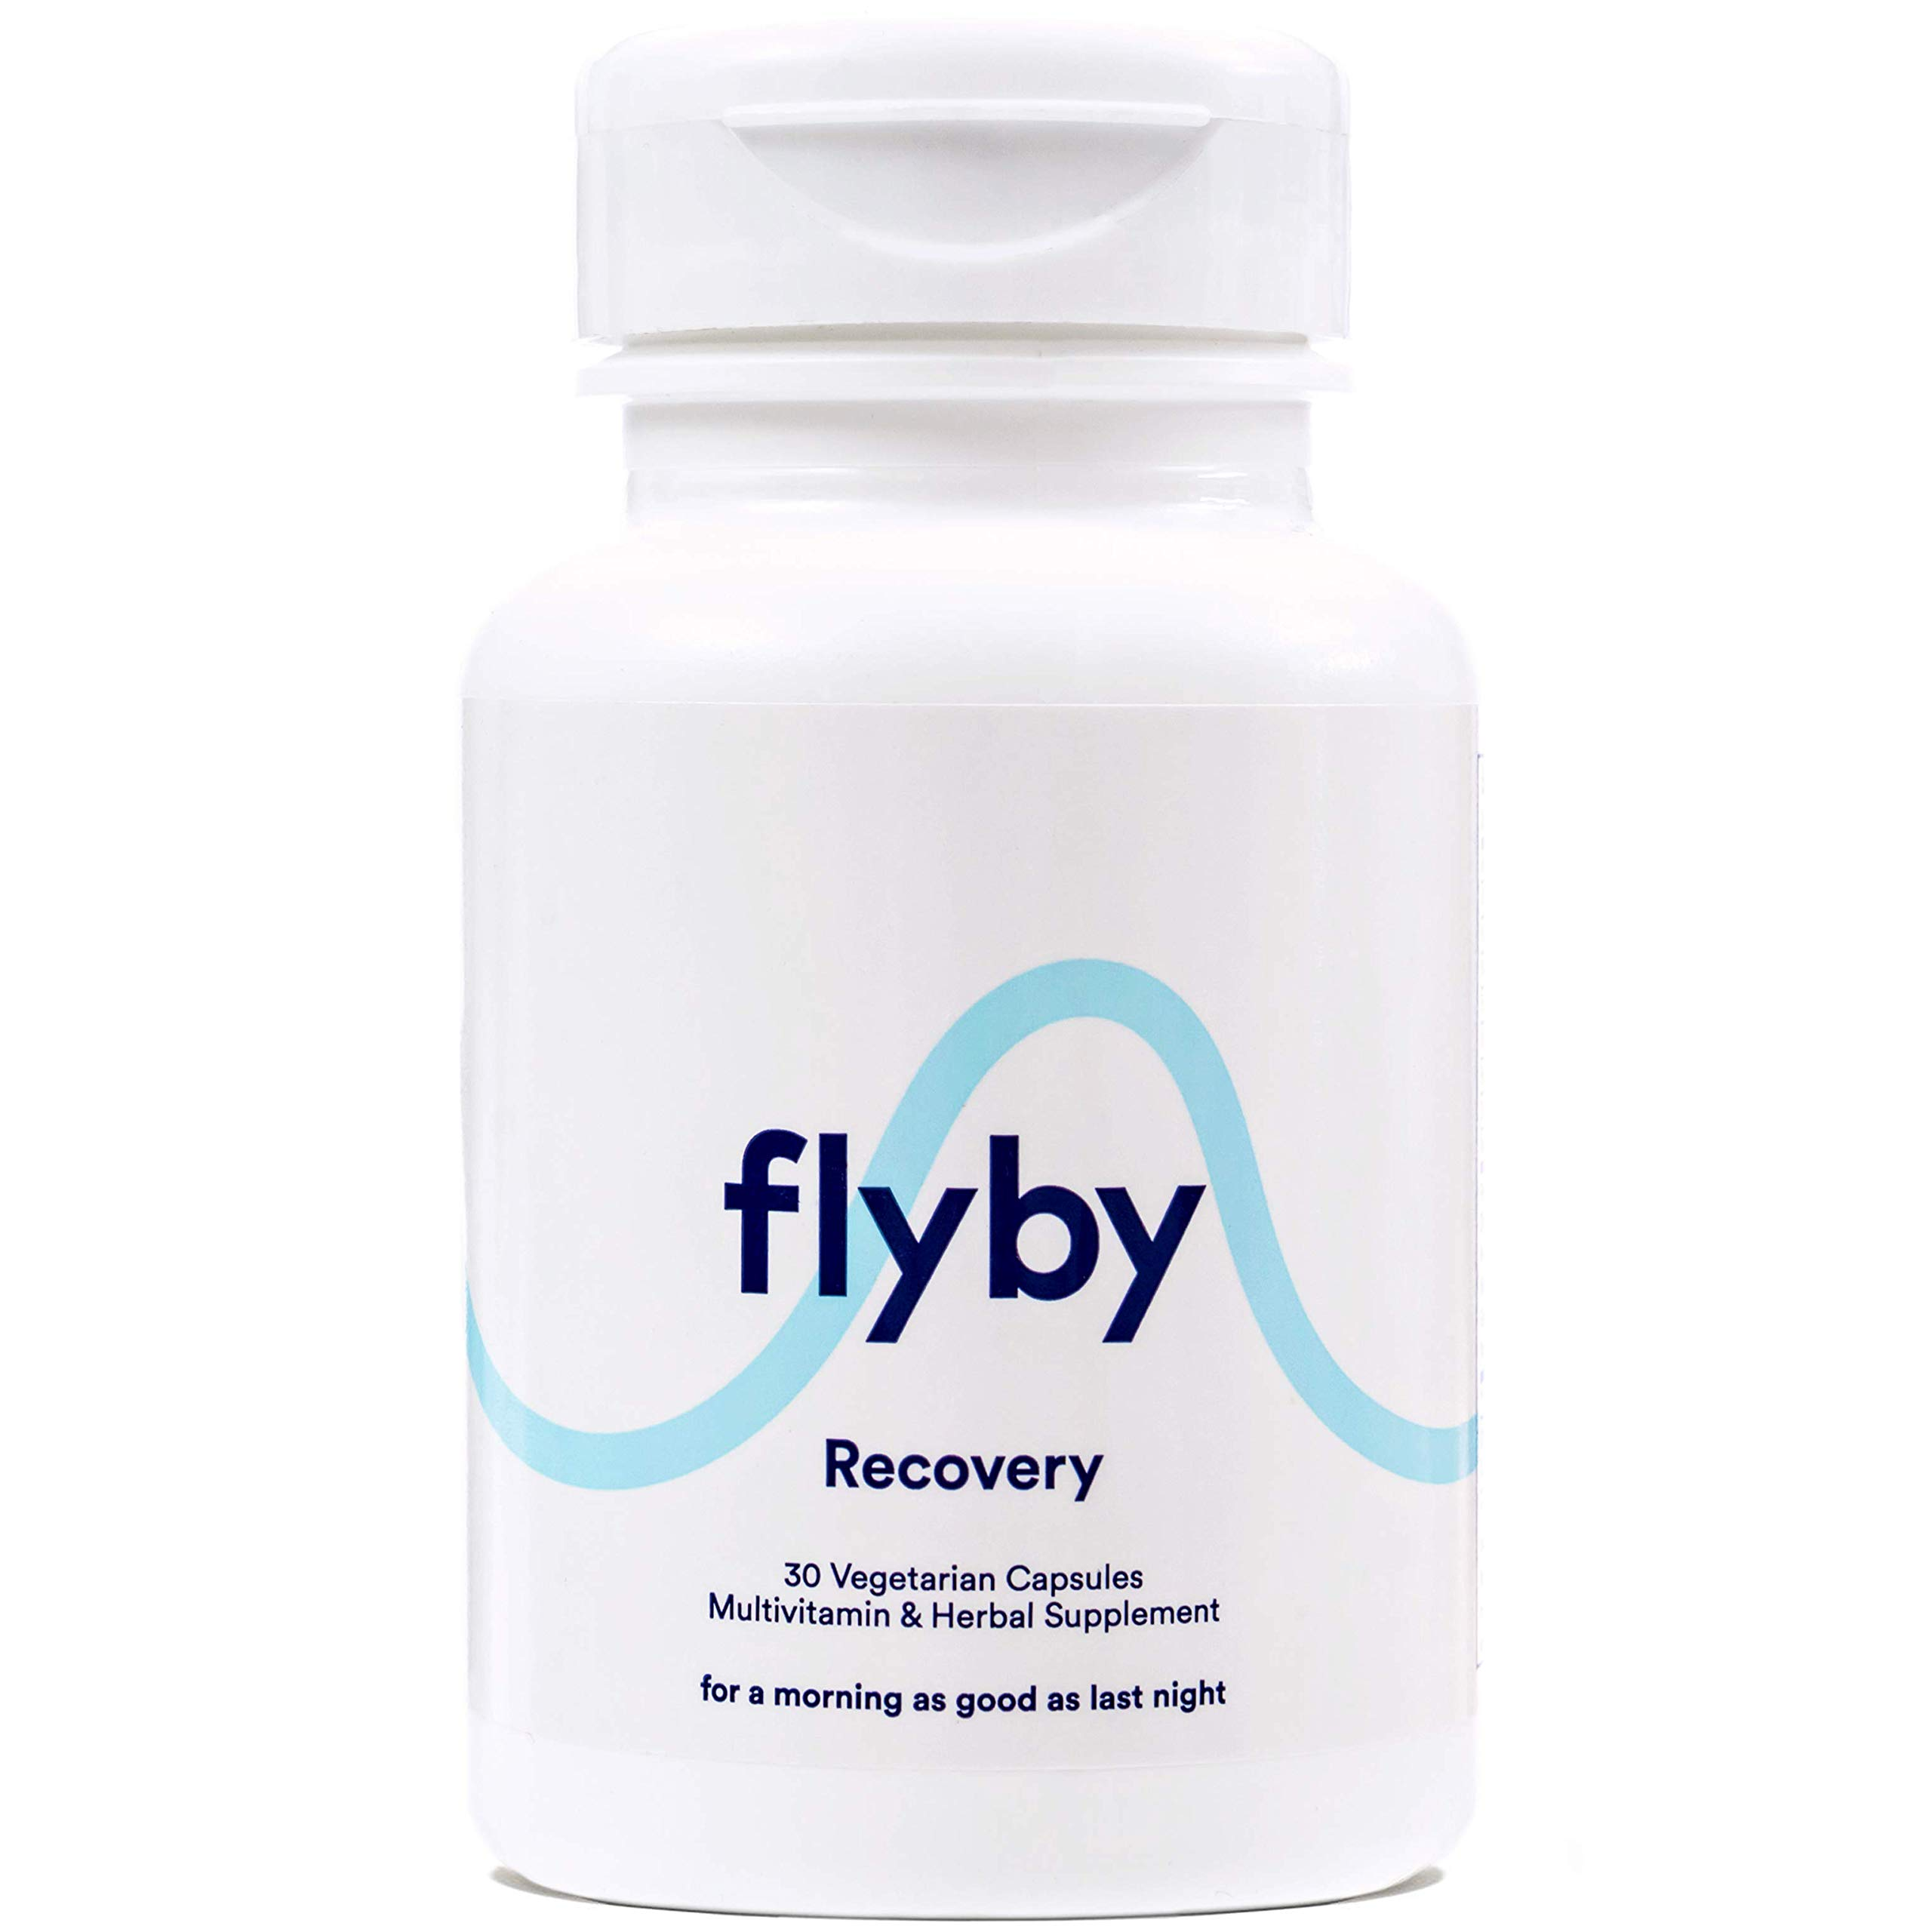 Flyby Hangover Cure & Prevention Pills (30 Capsules) - Dihydromyricetin (DHM), Chlorophyll, Prickly Pear, N-Acetyl-Cysteine, Milk Thistle for Morning After Alcohol Recovery & Aid - Certified Organic by FLYBY